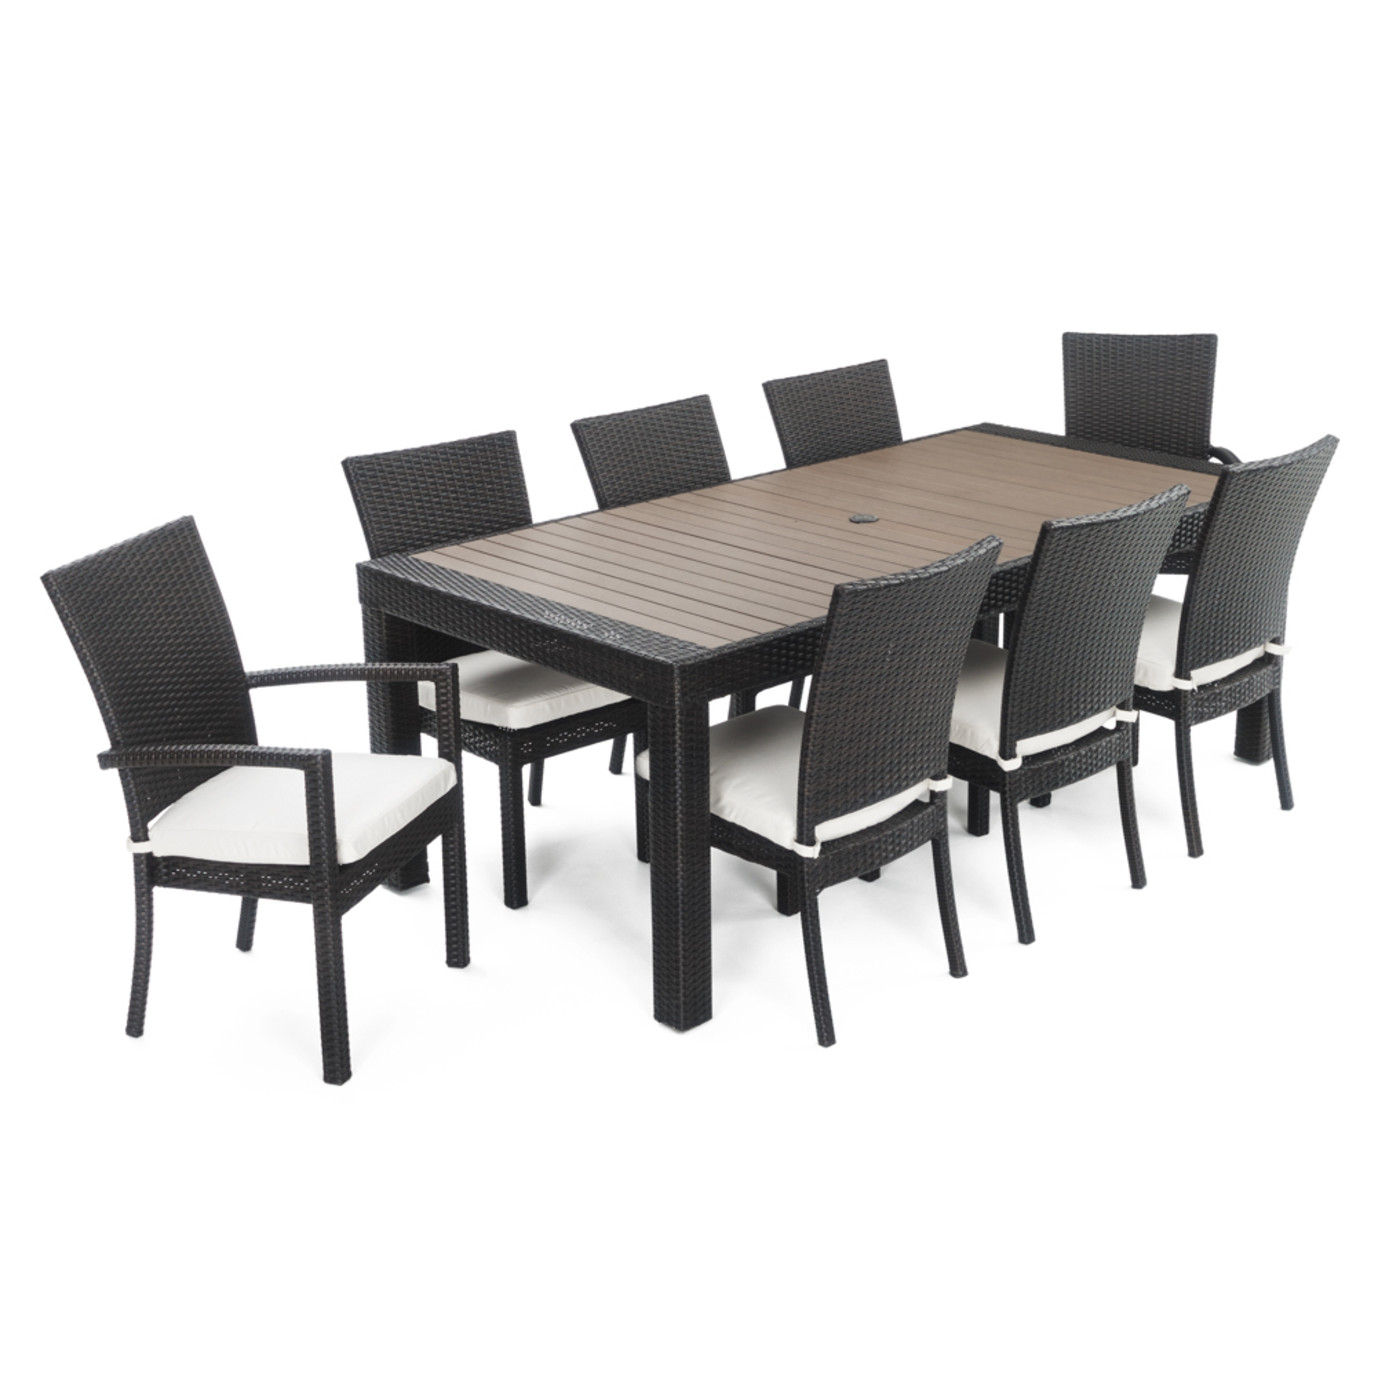 Deco™ 9 Piece Dining Set - Moroccan Cream